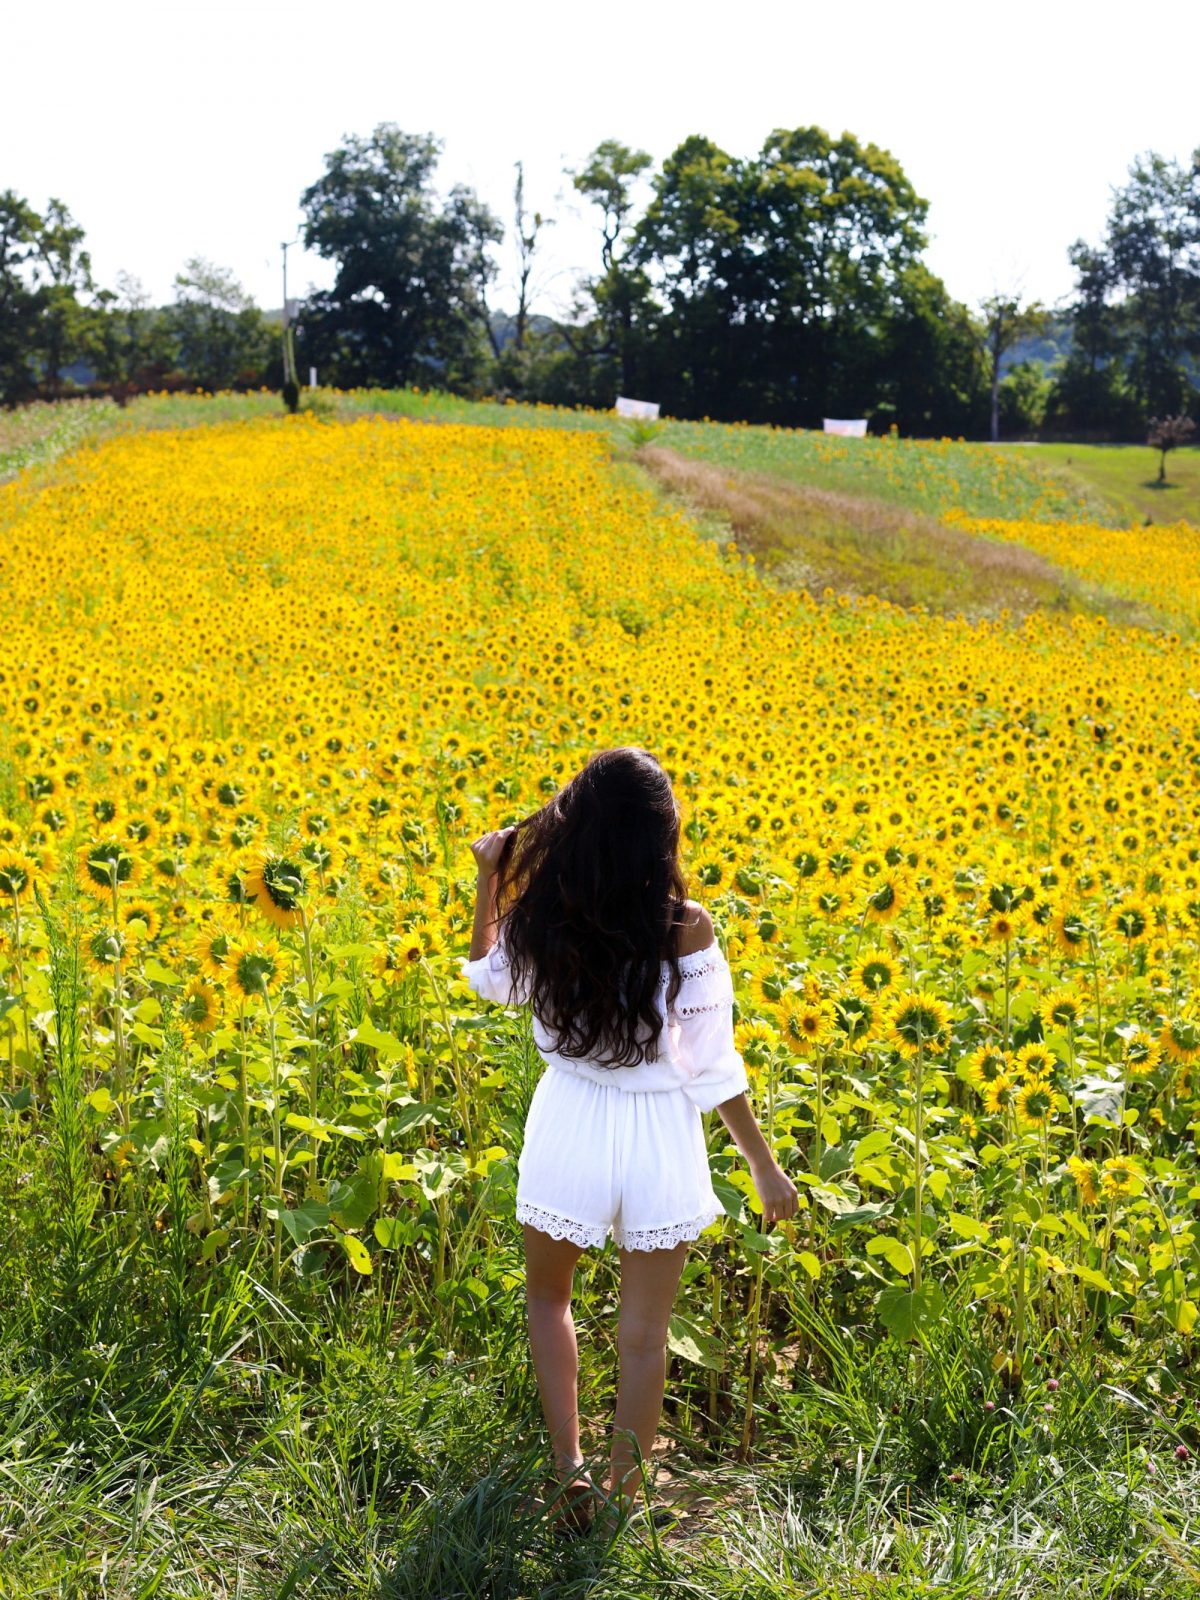 Sunflower fields, sunflower photo shoot, michigan, pure michigan, sunflowers, summer photo shoot ideas, sunflower field in the summer